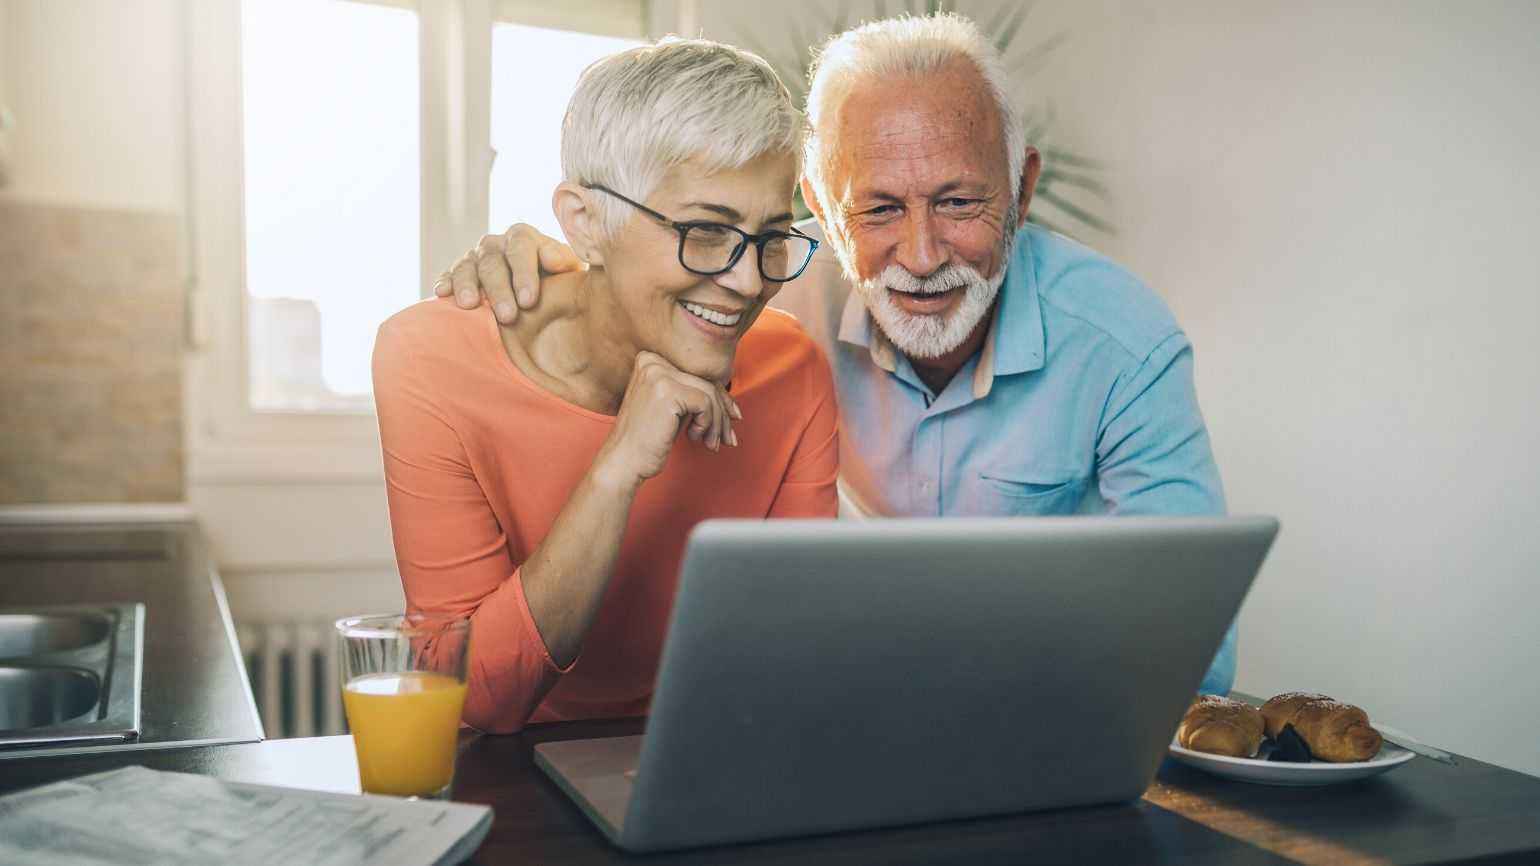 A man and woman video chat on a laptop